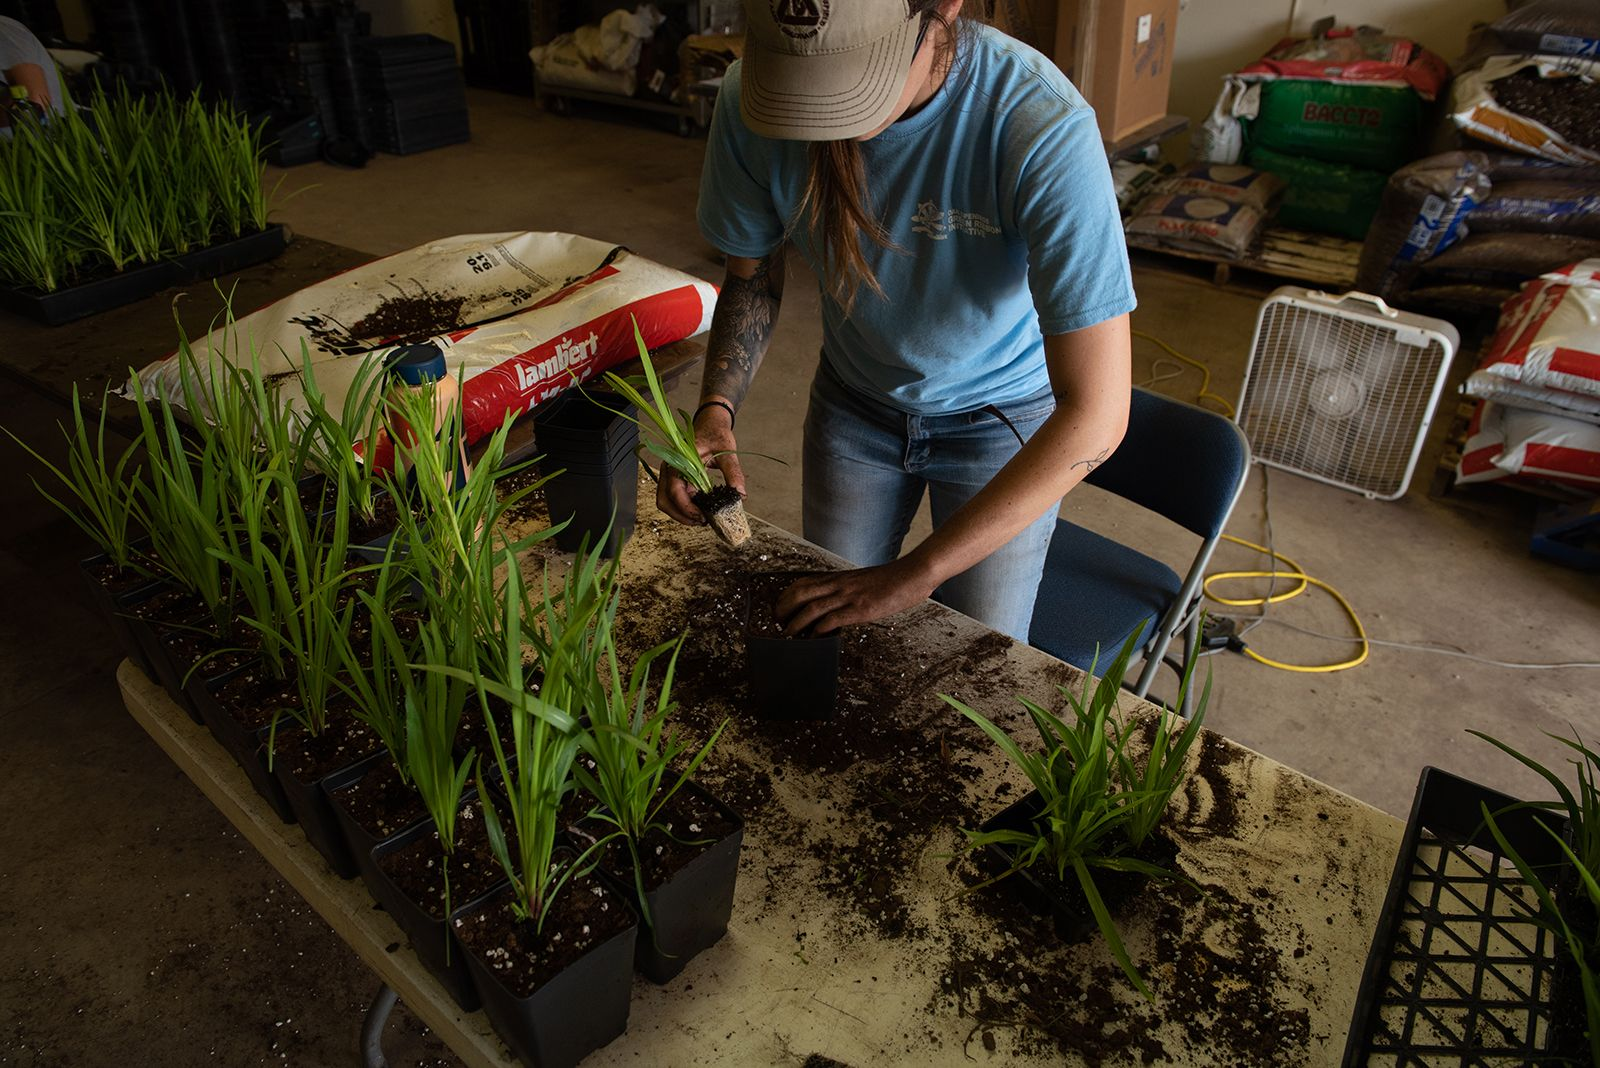 A person in a blue shirt stands at a table and plants smaller into larger pots of soil.